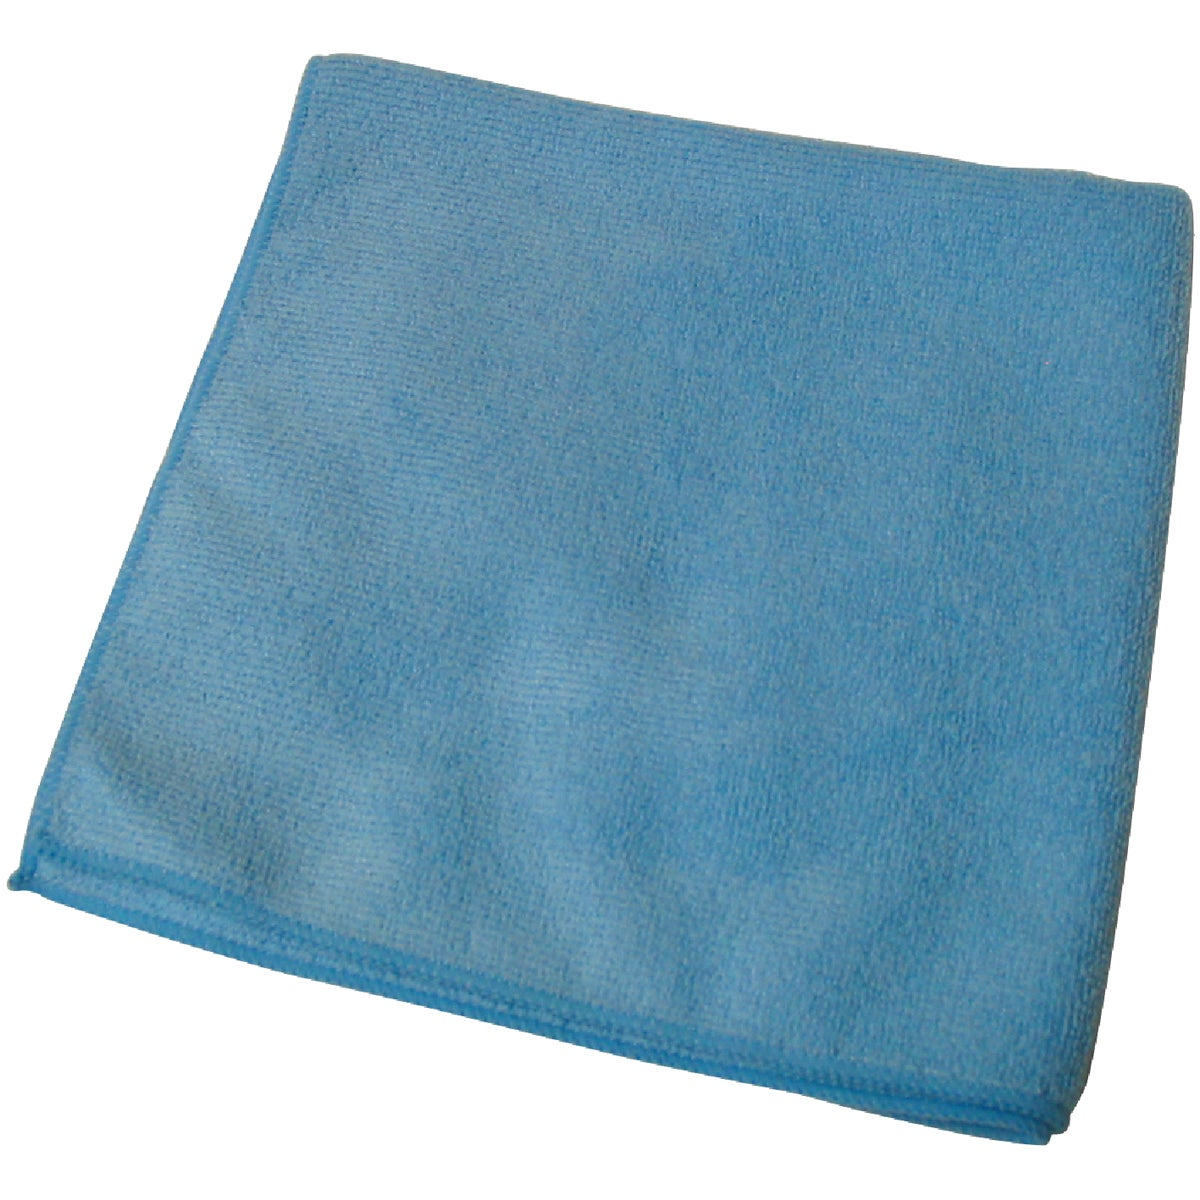 16X16 Blue Mf Cloth